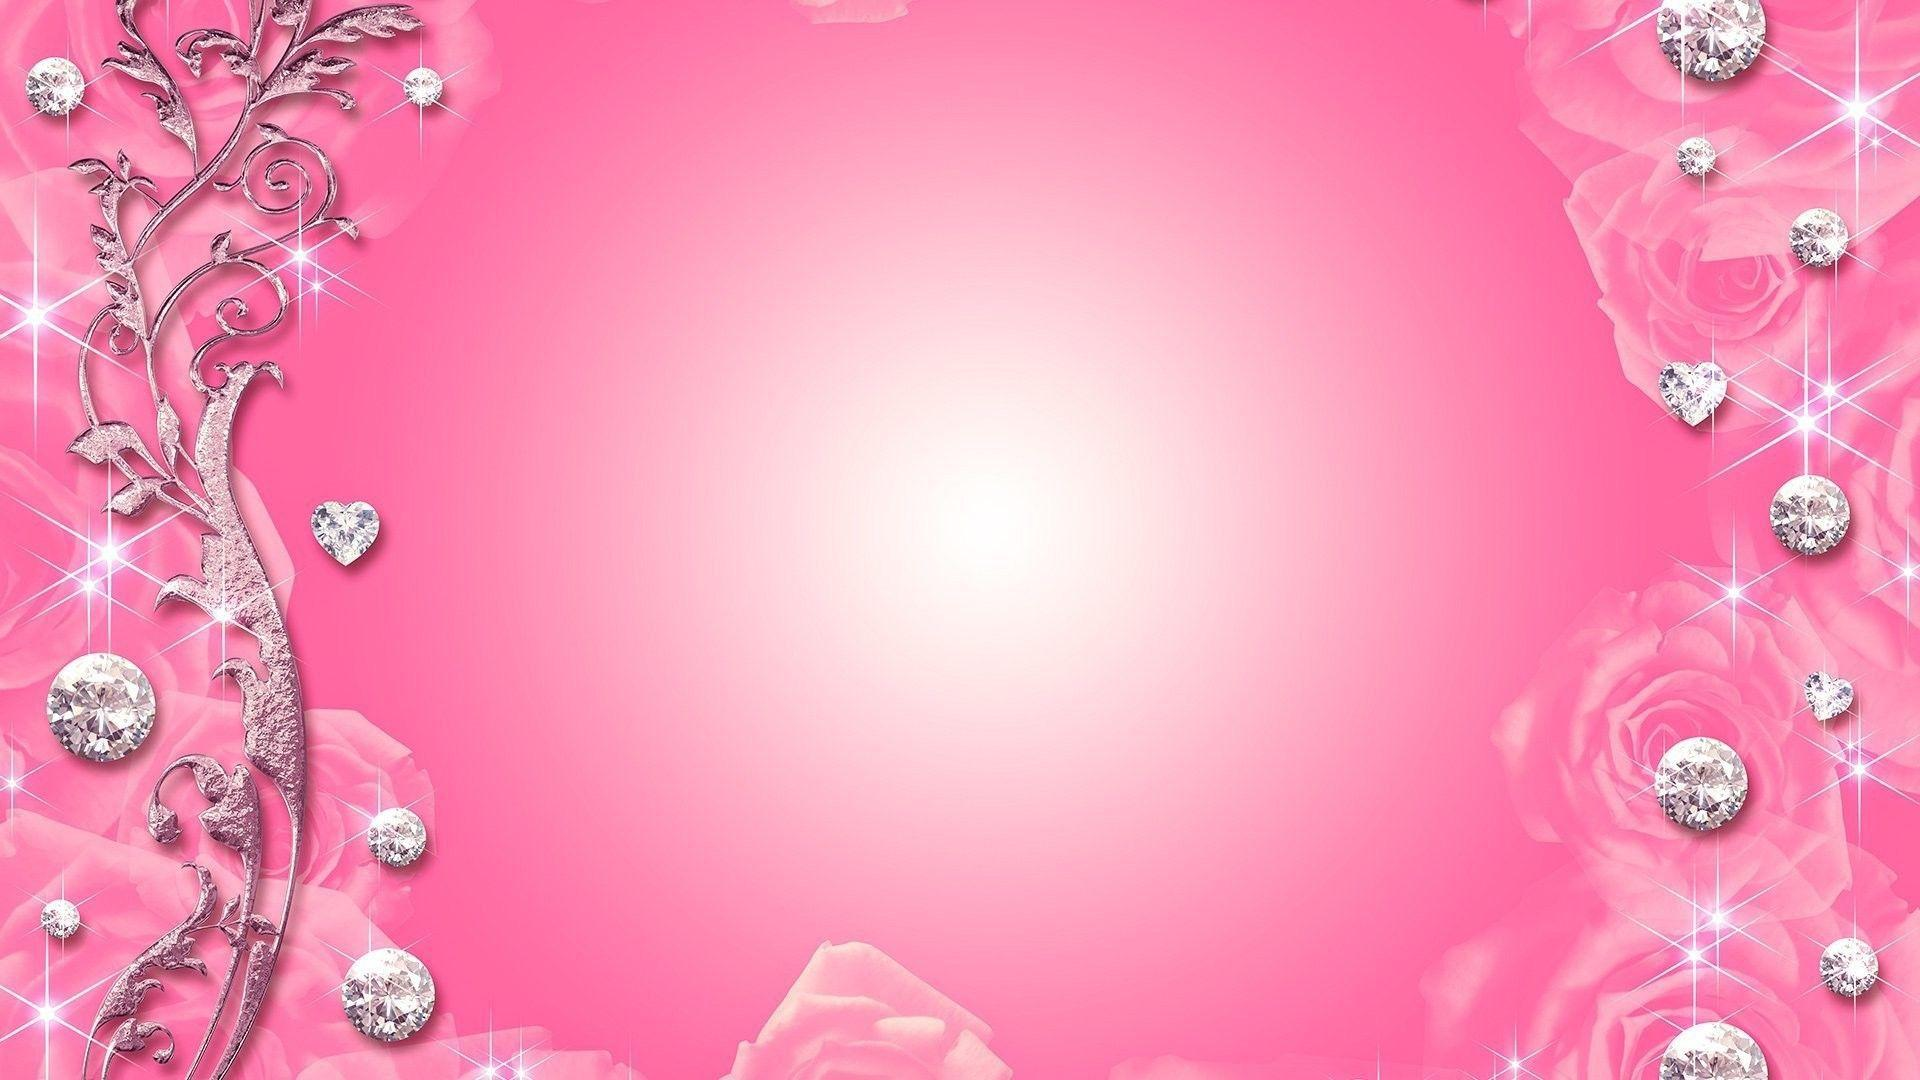 Pink Background wallpaper - 1111503